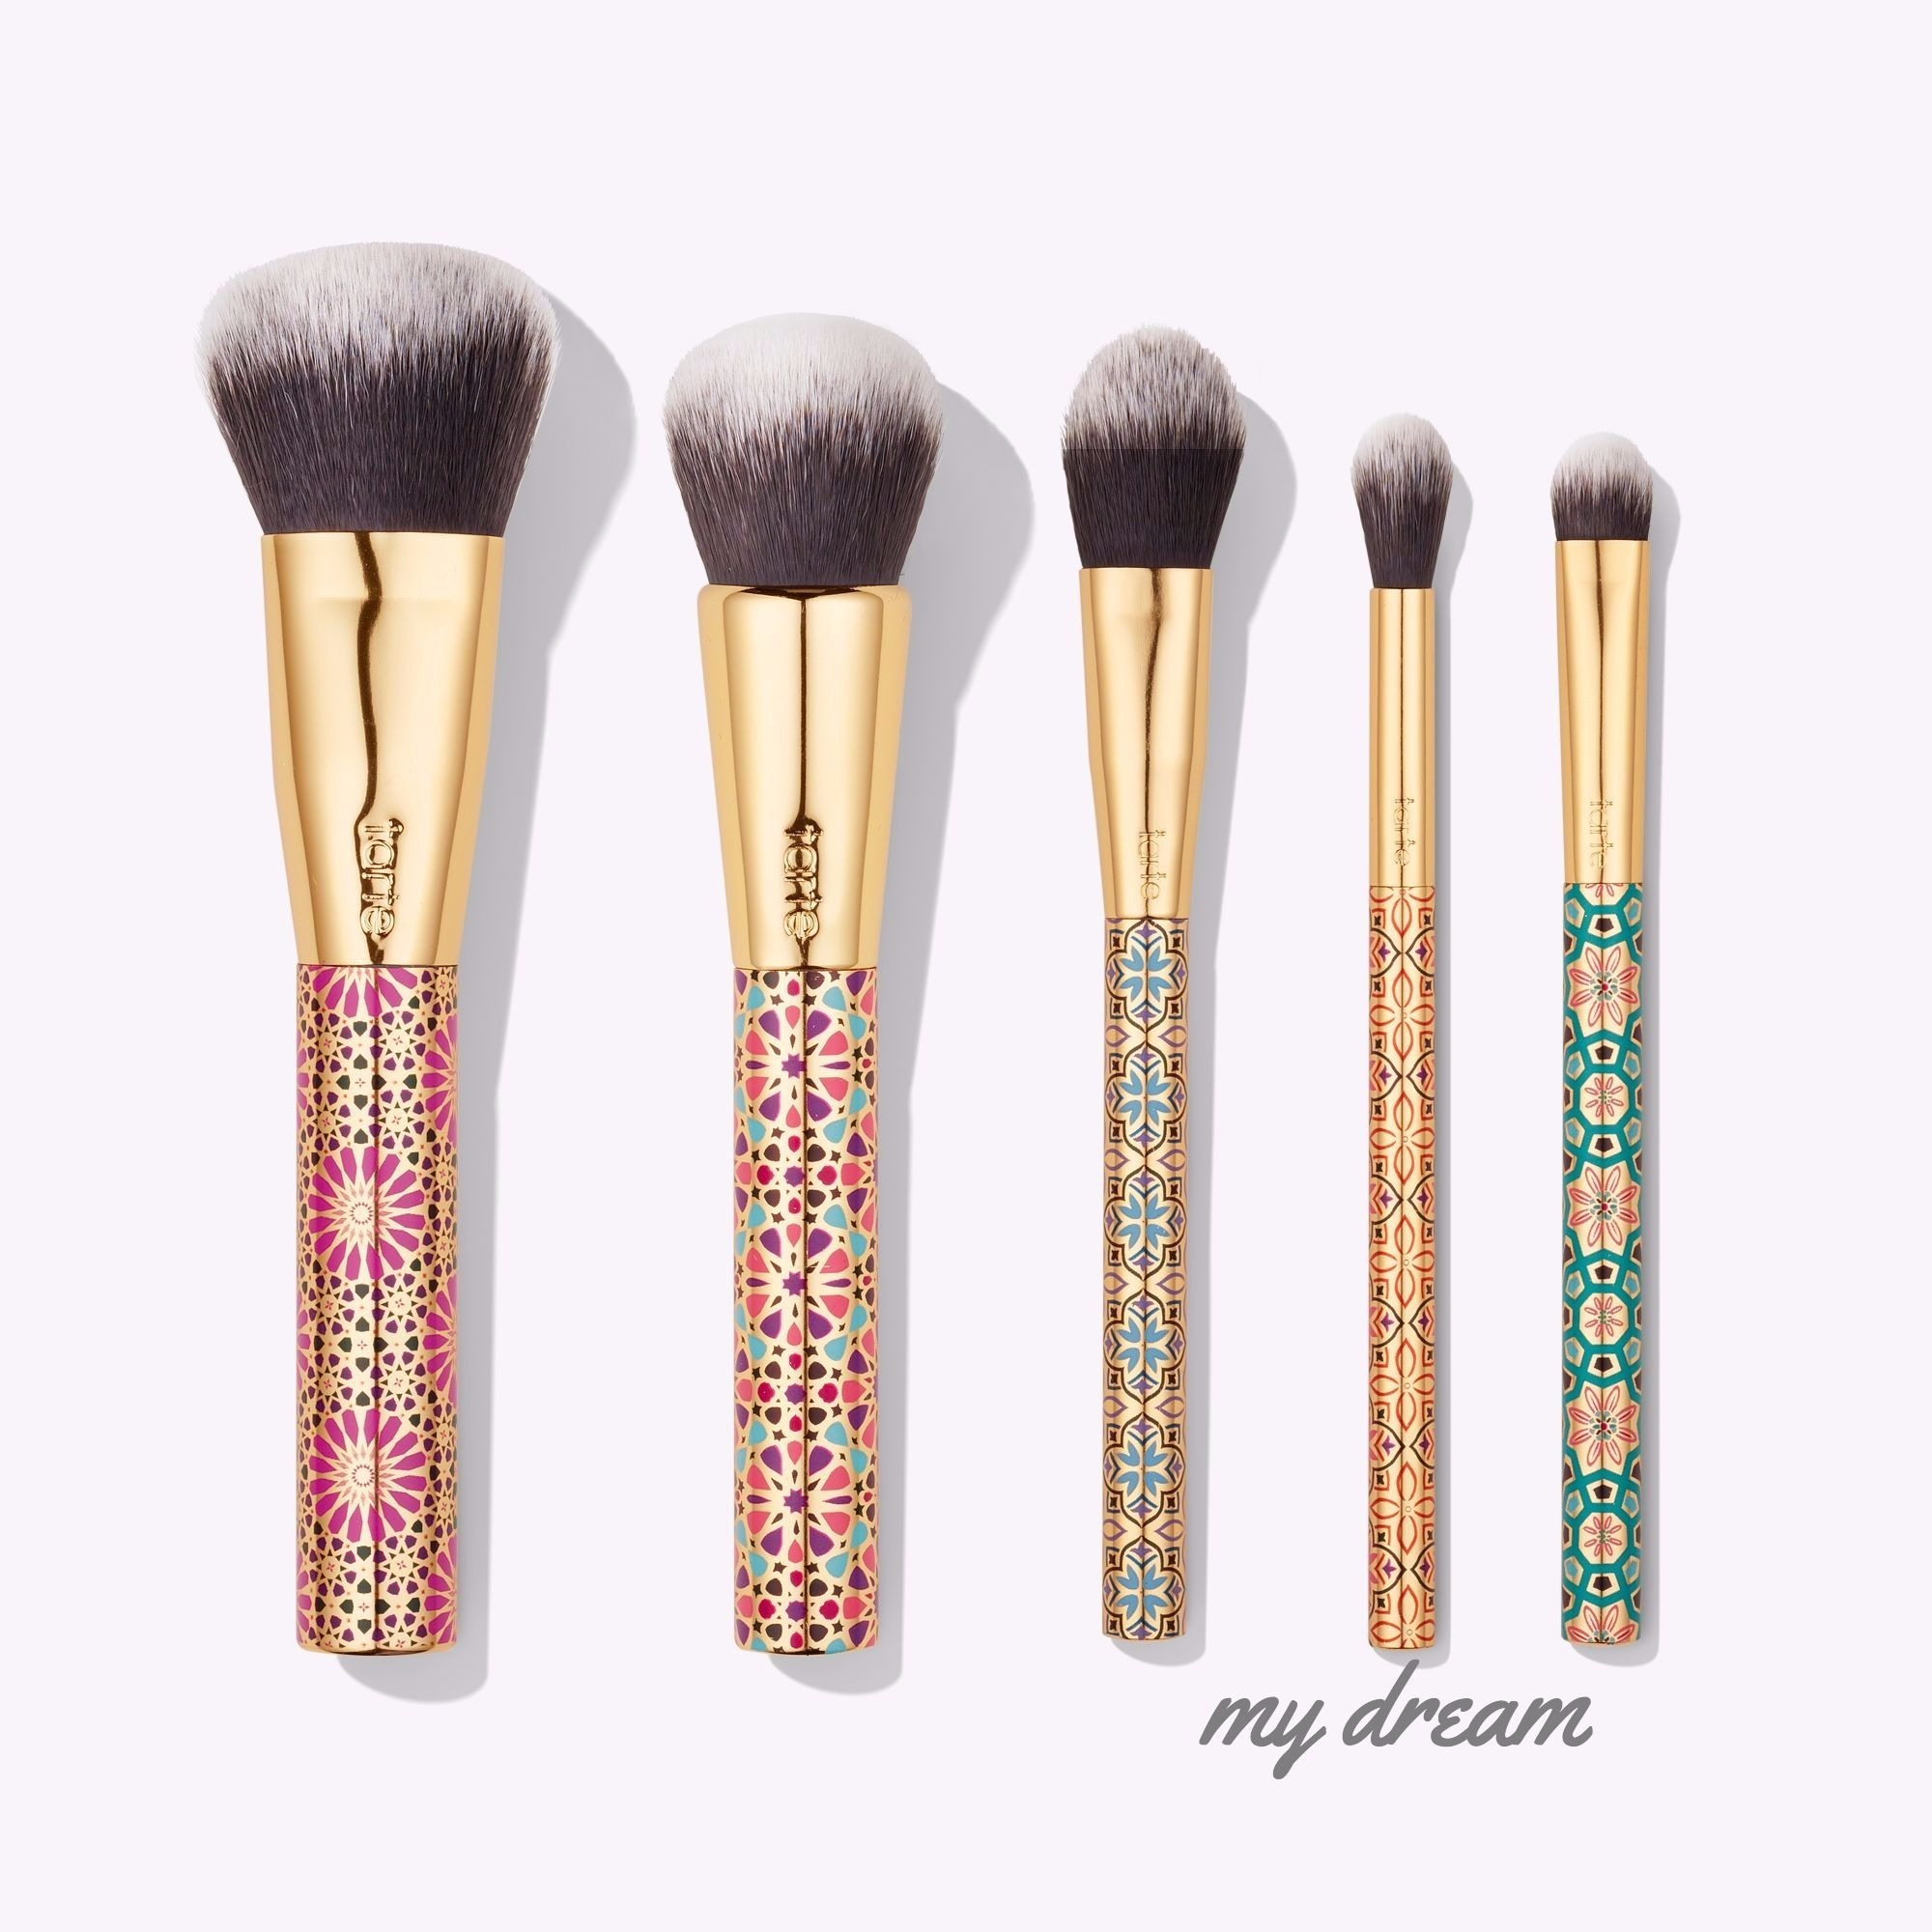 ホリデー限定☆tarte☆artful accessories brush set 5本入